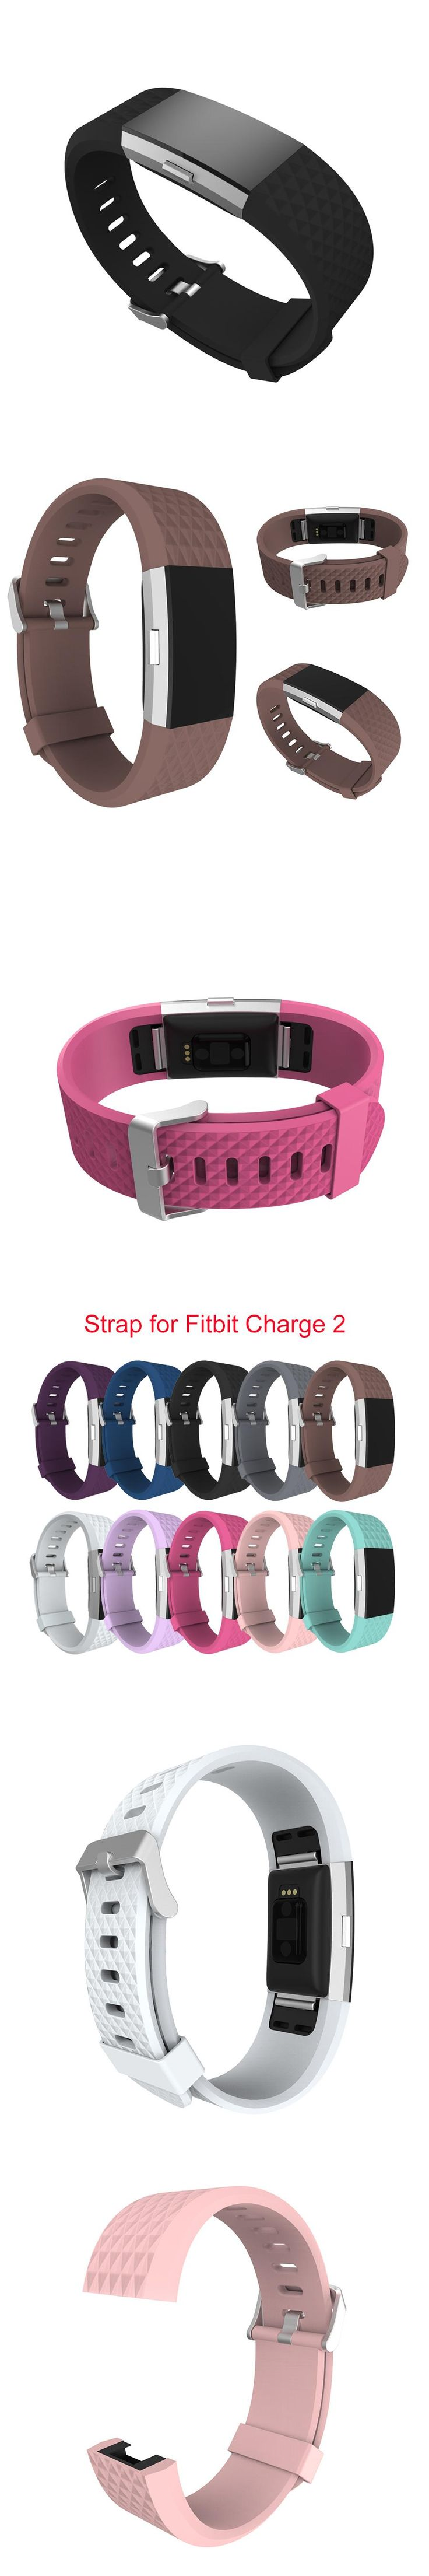 Wholesale Diamond Silicone Watchbands for fitbit charge 2 Replacement Band Strap  For Fitbit charge 2 Bracelet Smart Wristbands